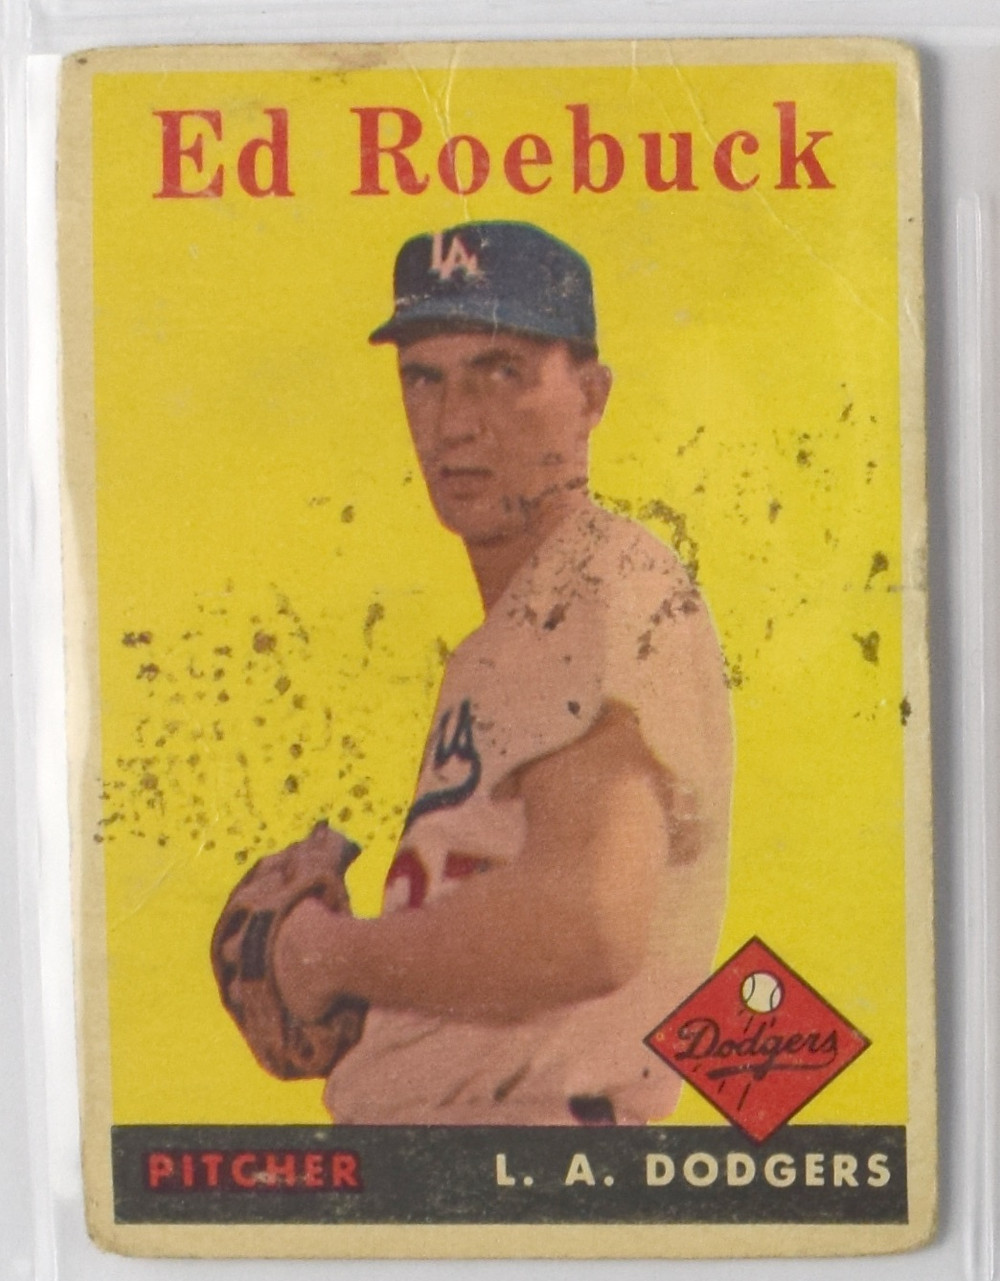 Soiled Ed Roebuck baseball card